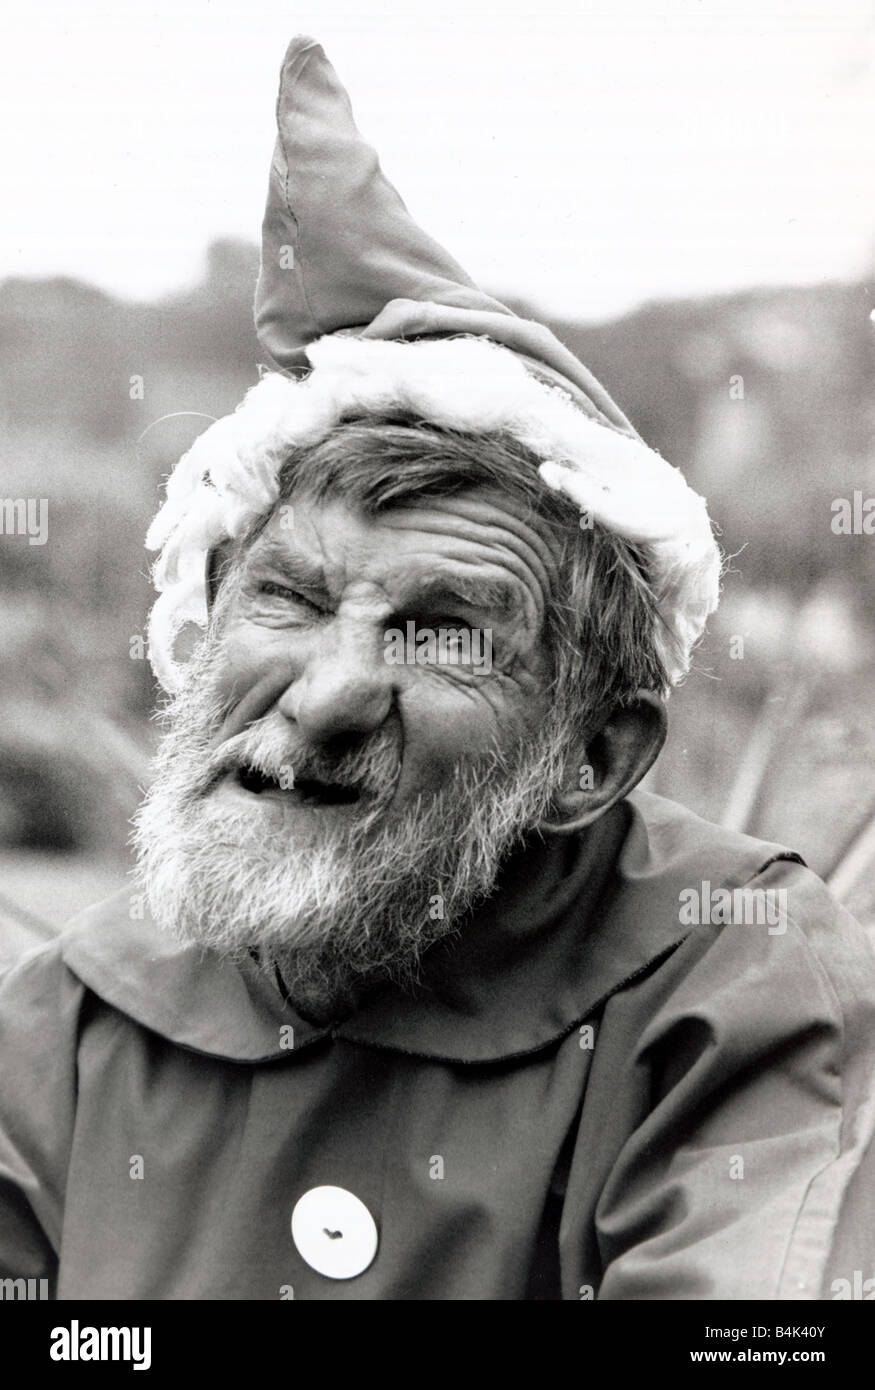 Walter Sherratt is 67 5ft 2in small and is called Gnomey by his neighbours He loves his garden and also takes care - Stock Image